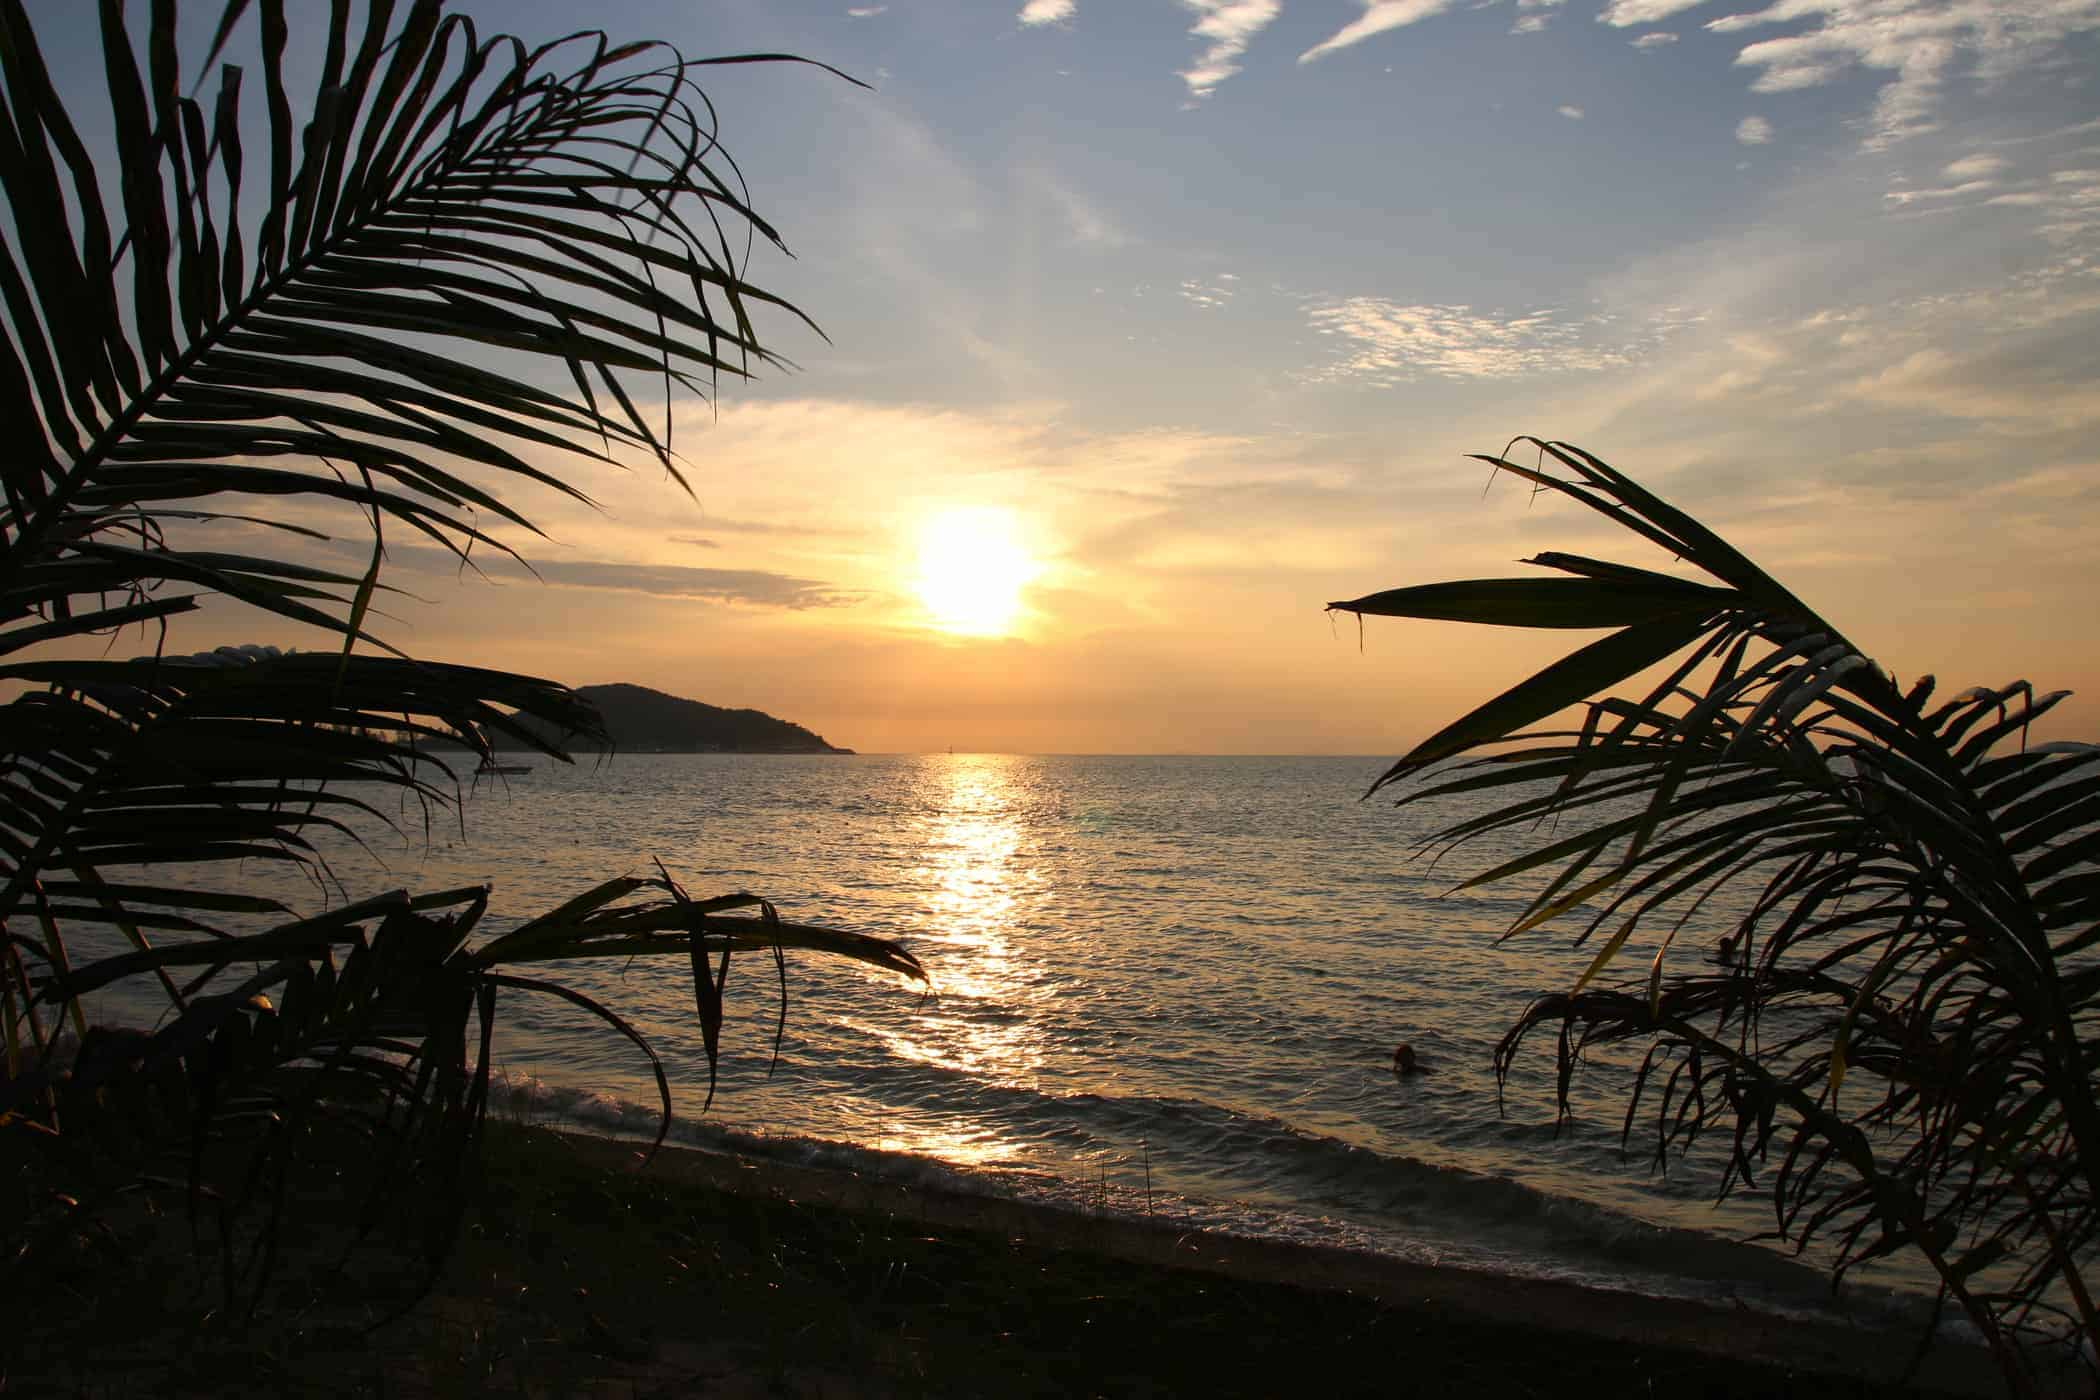 Sunset over the beach in Koh Samui.